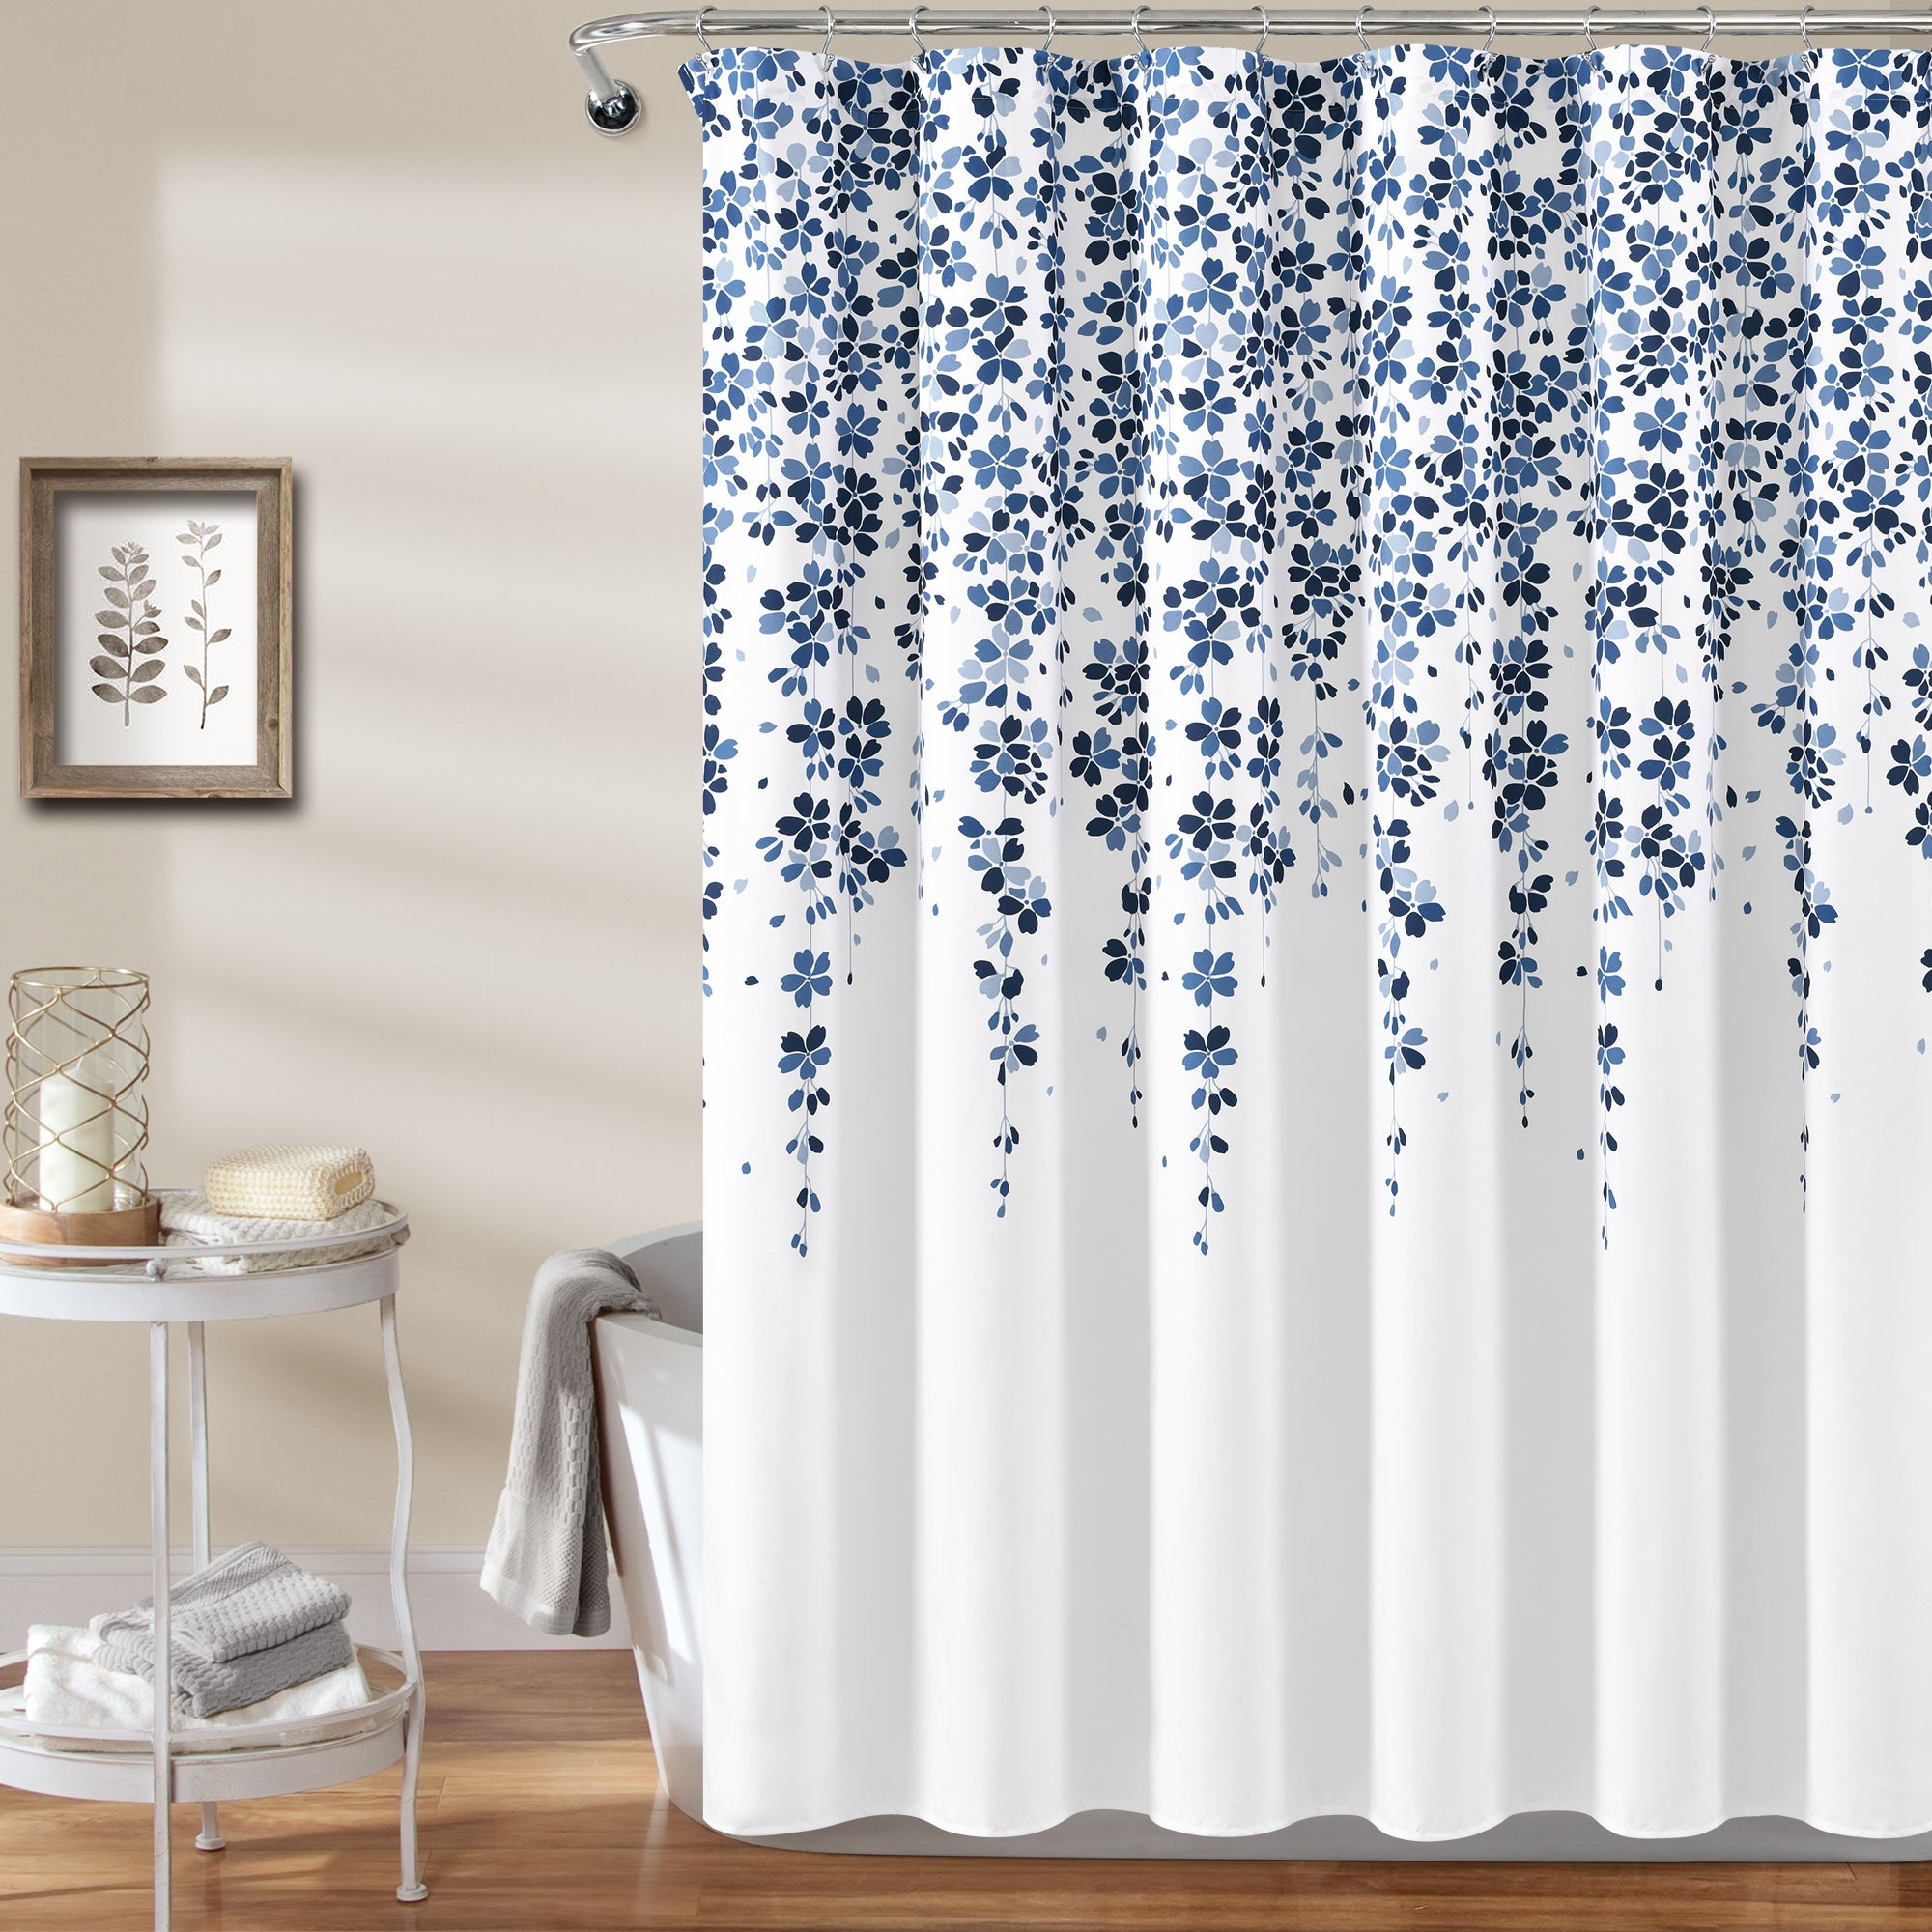 Weeping Flower Shower Curtain Lush Decor Www Lushdecor Com Lushdecor